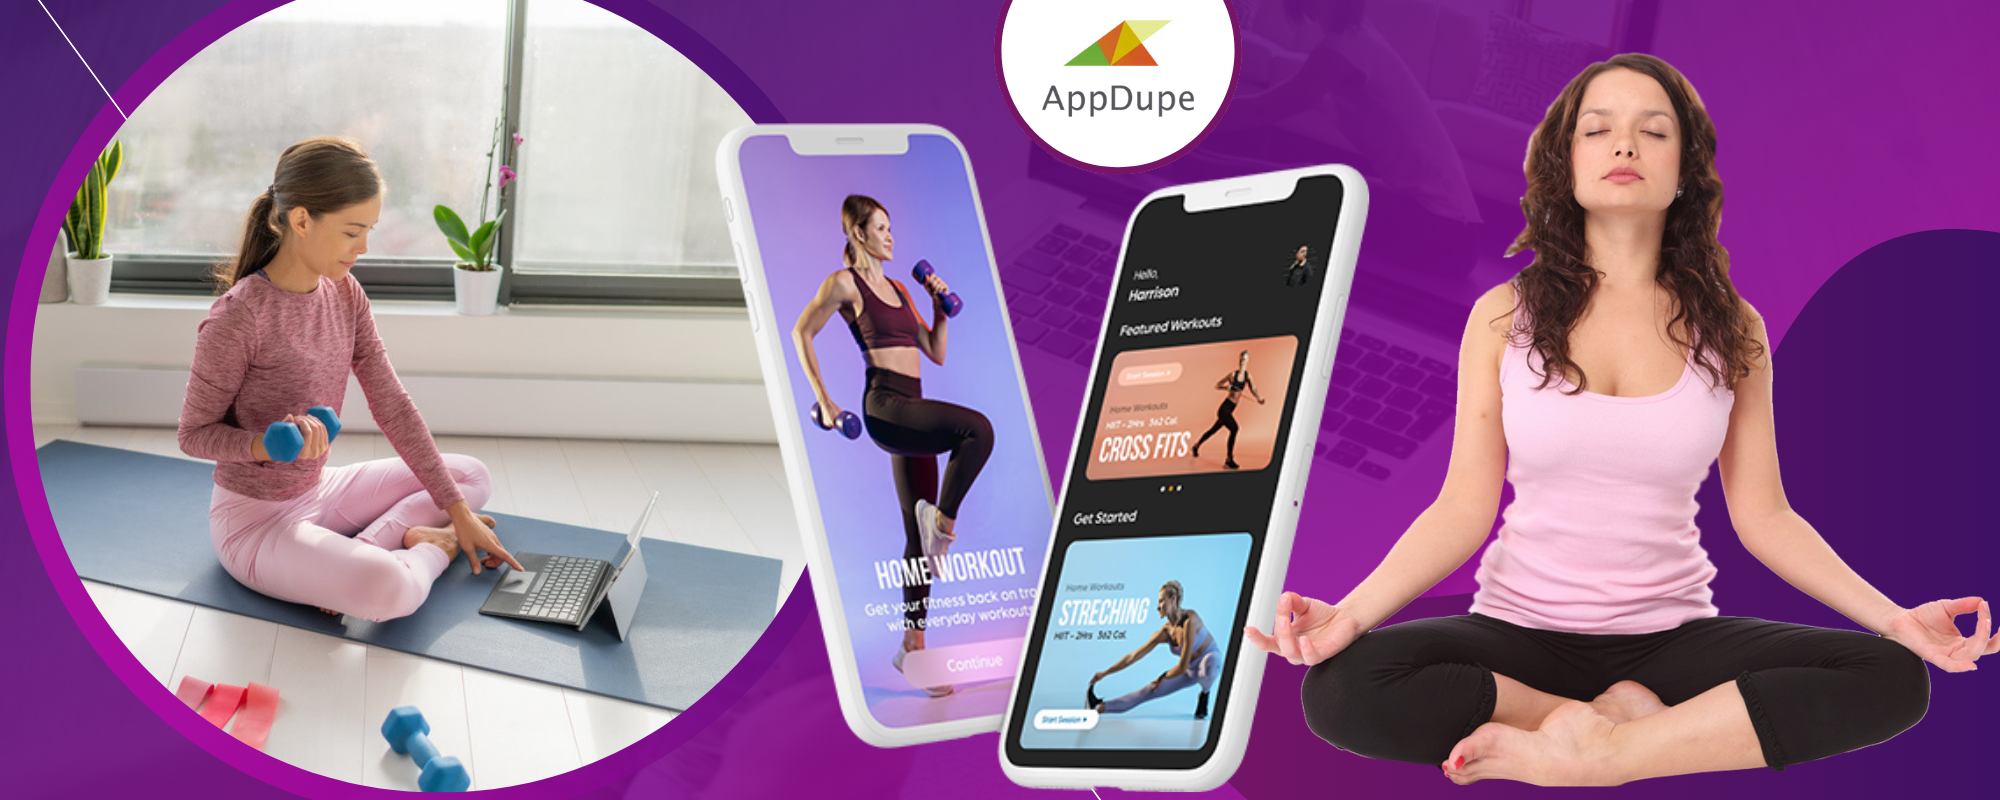 FitOn Clone: Curate Tailor-Made Fitness Plans For Users